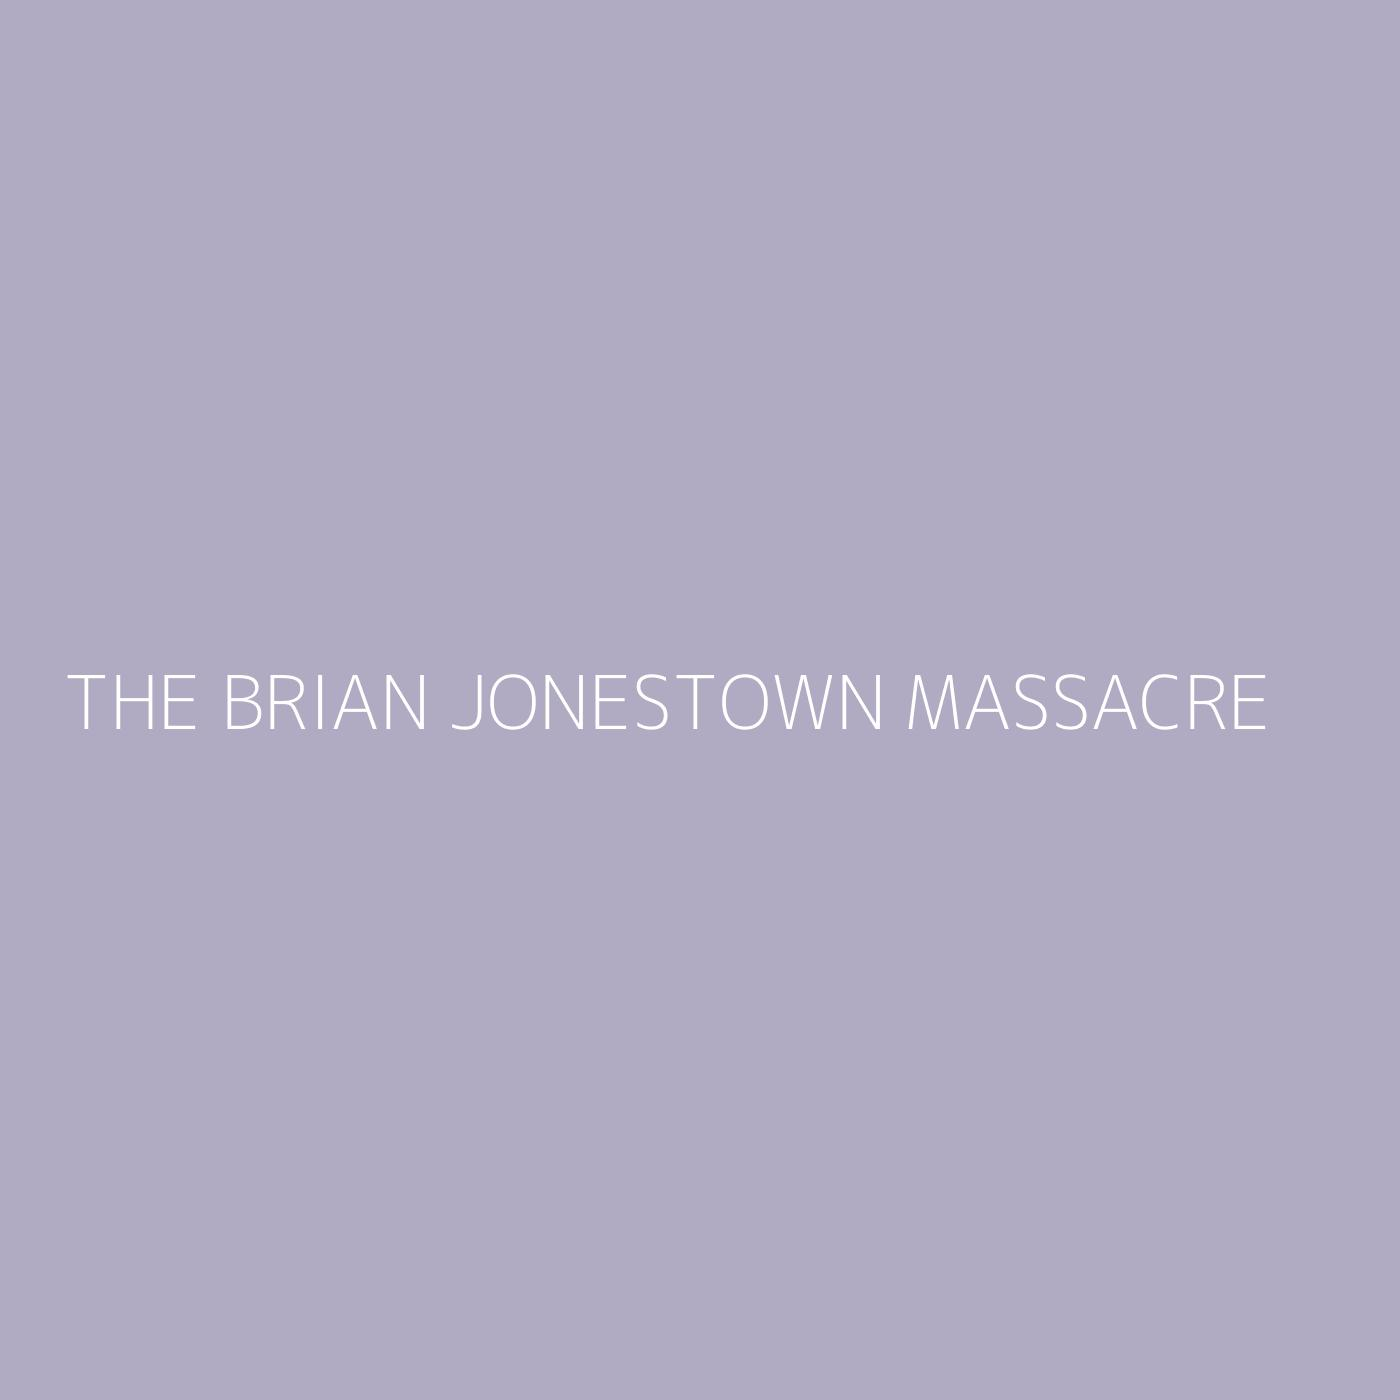 The Brian Jonestown Massacre Playlist Artwork